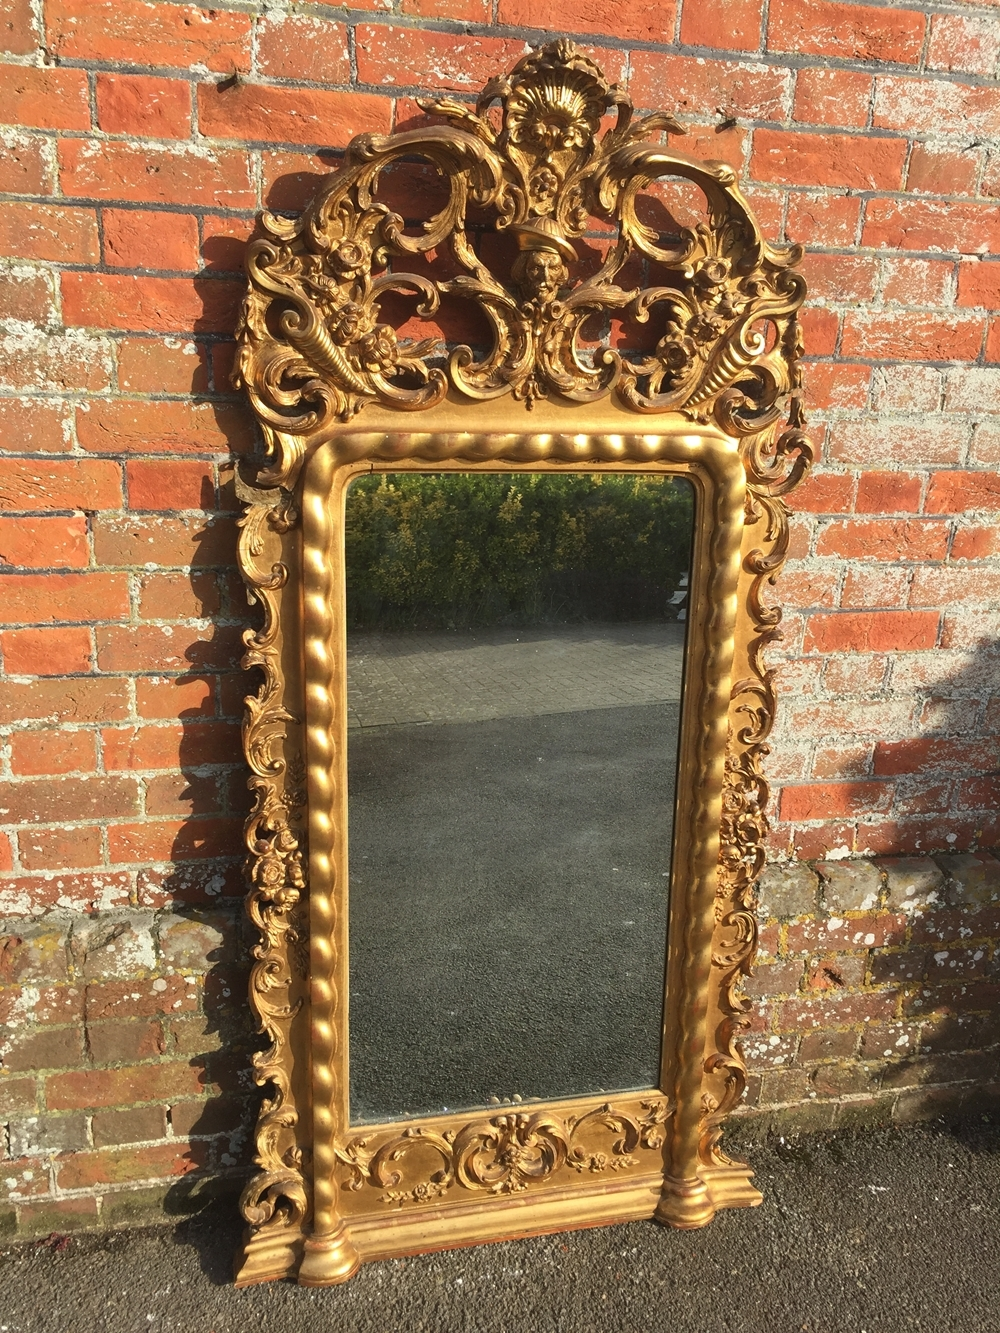 Large Overmantle Mirrors Uk Antique Overmantle Mirrors For Sale Inside Gilt Mirrors For Sale (Image 12 of 15)